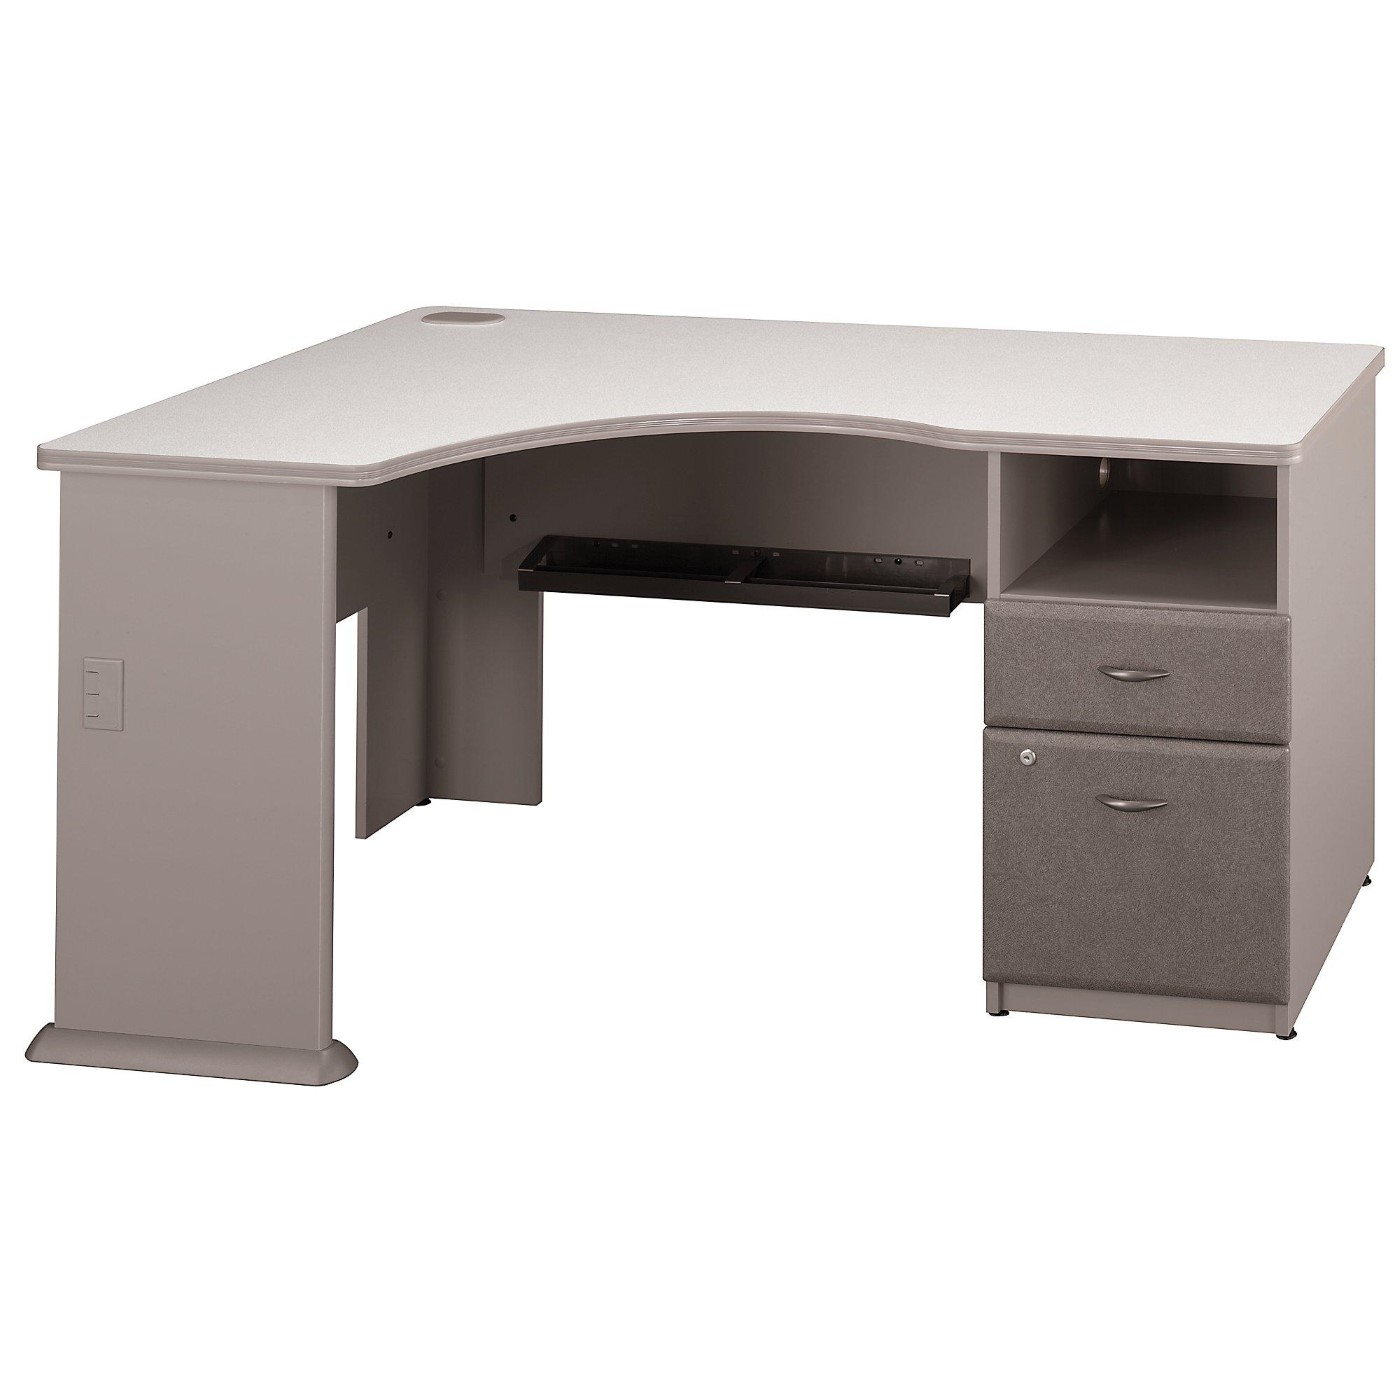 <font color=#c60><b>BUSH BUSINESS FURNITURE SERIES A CORNER DESK WITH 2 DRAWER PEDESTAL. FREE SHIPPING</font></b>